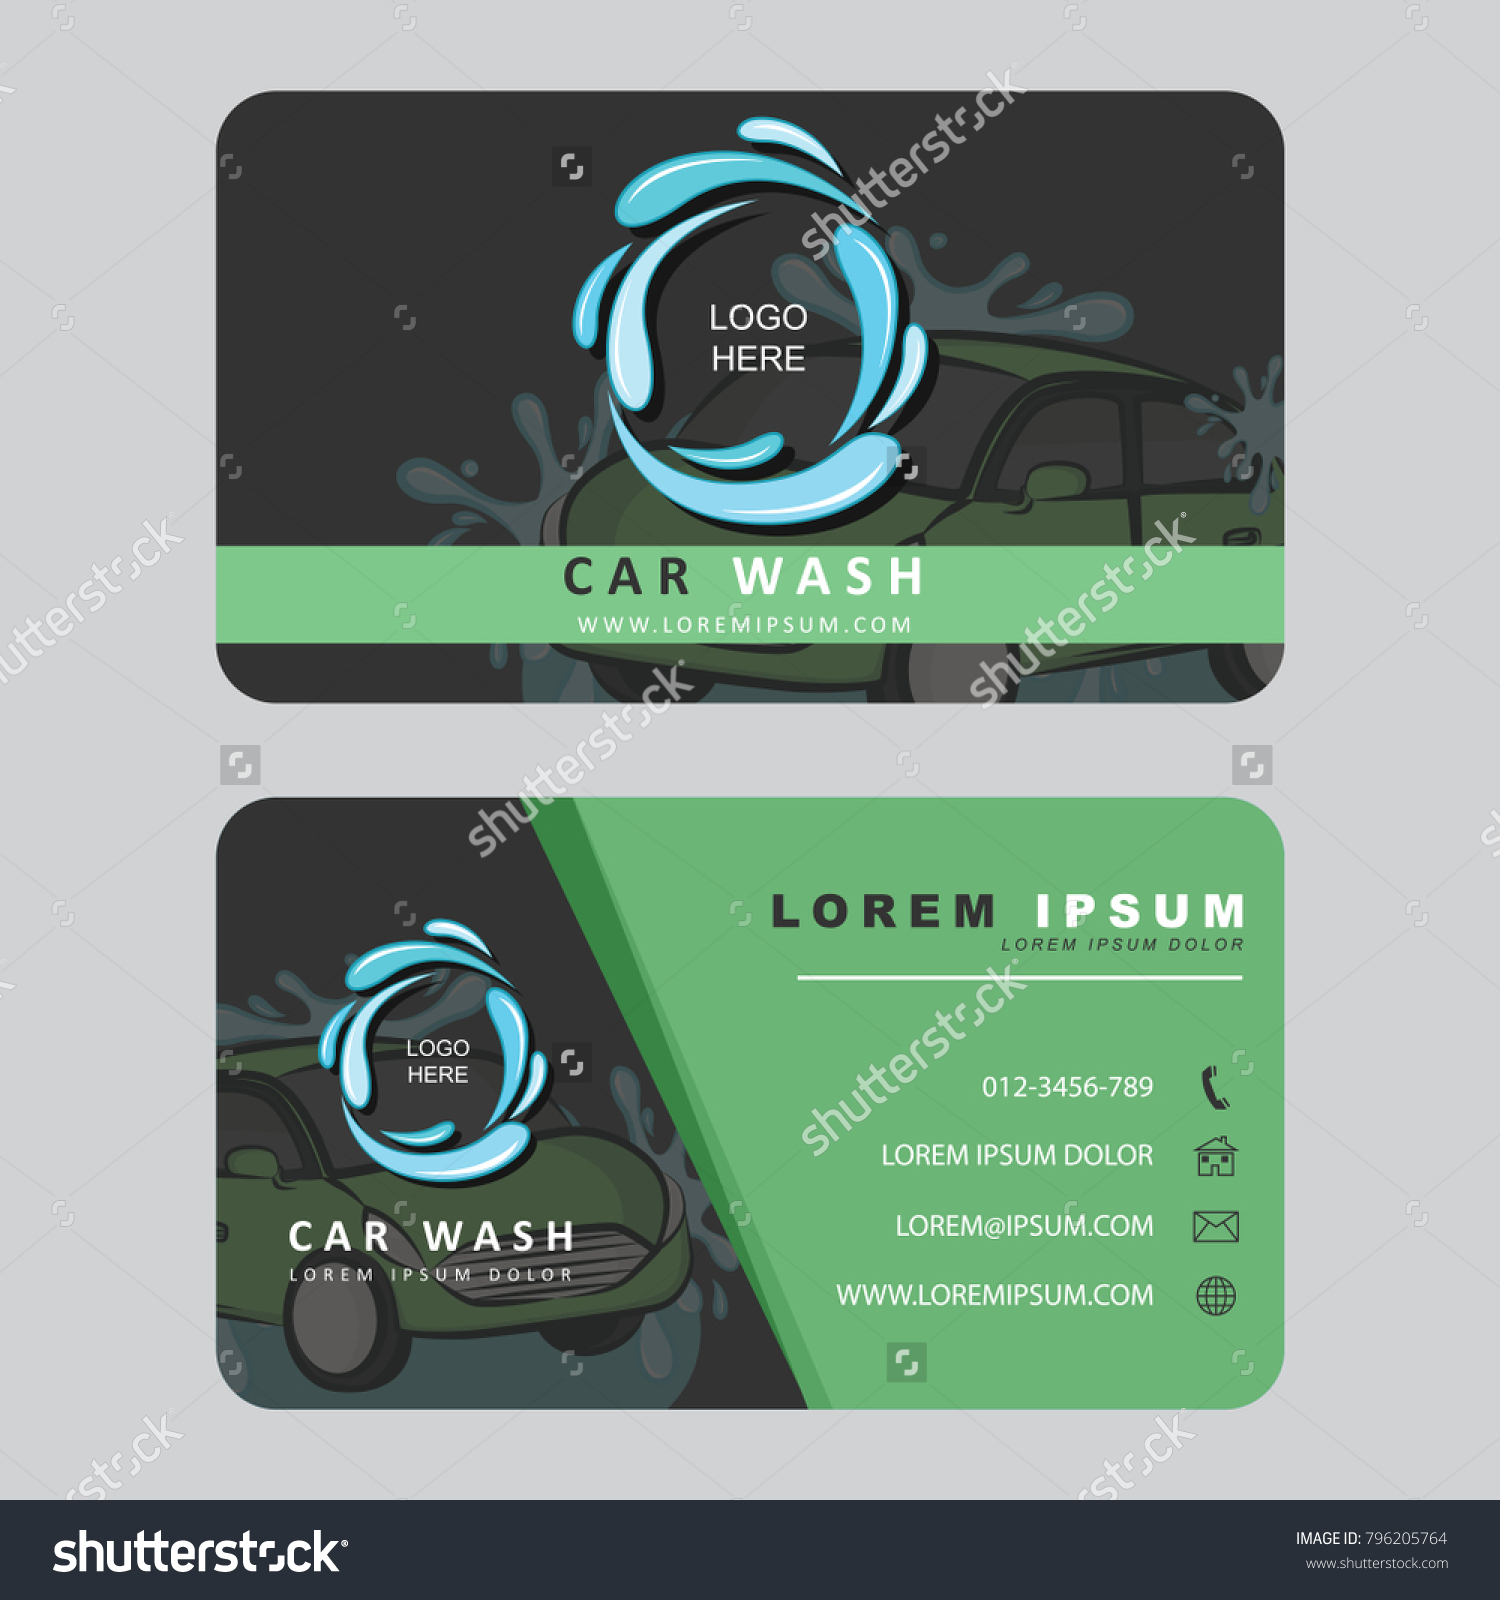 Cheap Car Wash Brooklyn